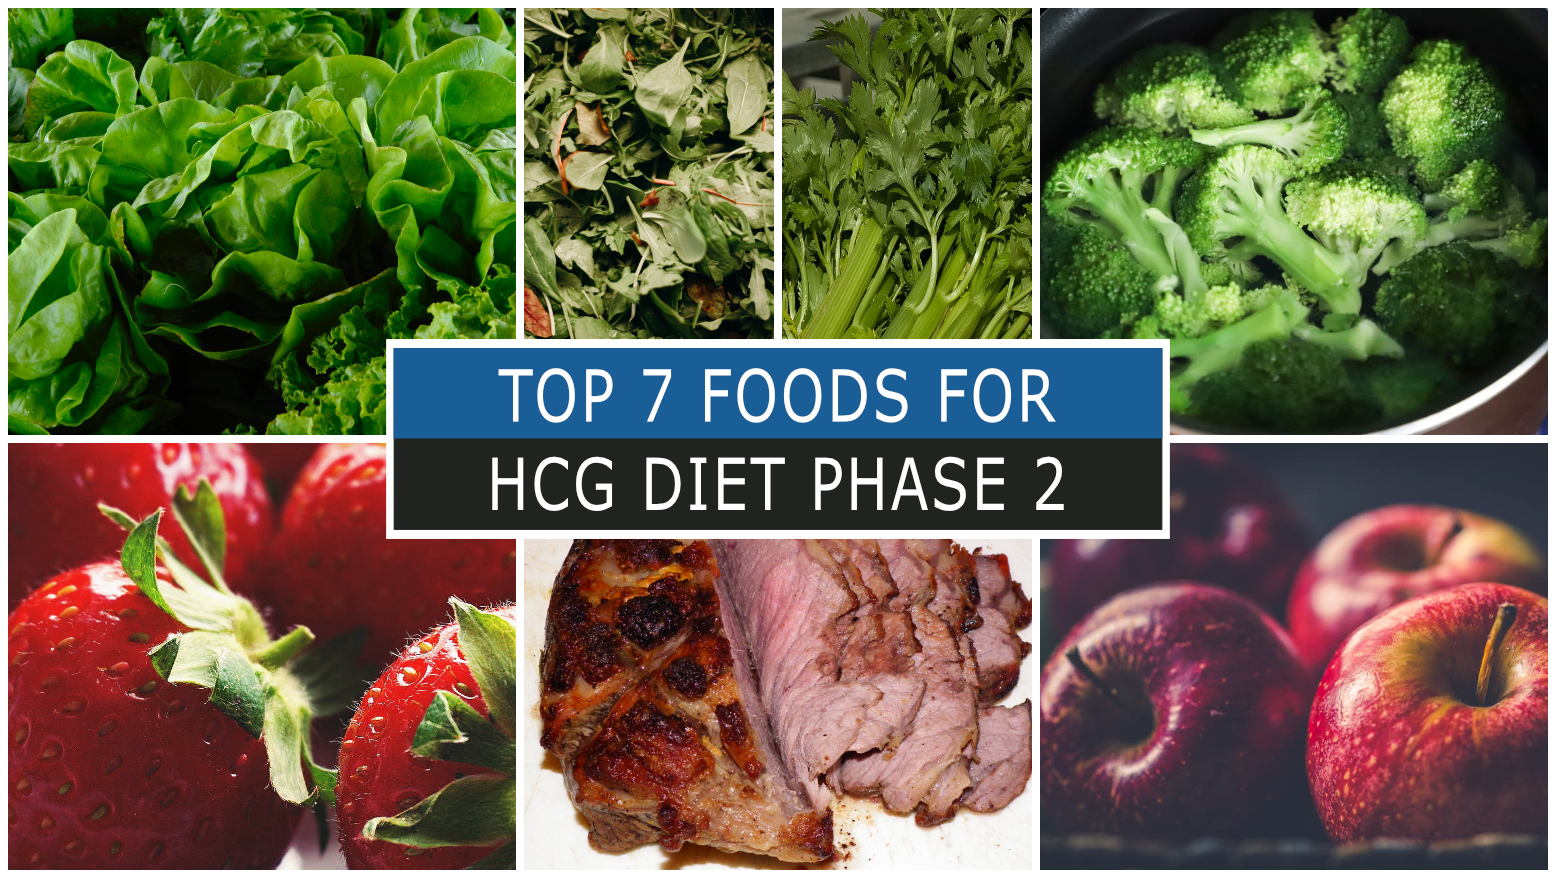 TOP 7 FOODS FOR HCG DIET PHASE 2